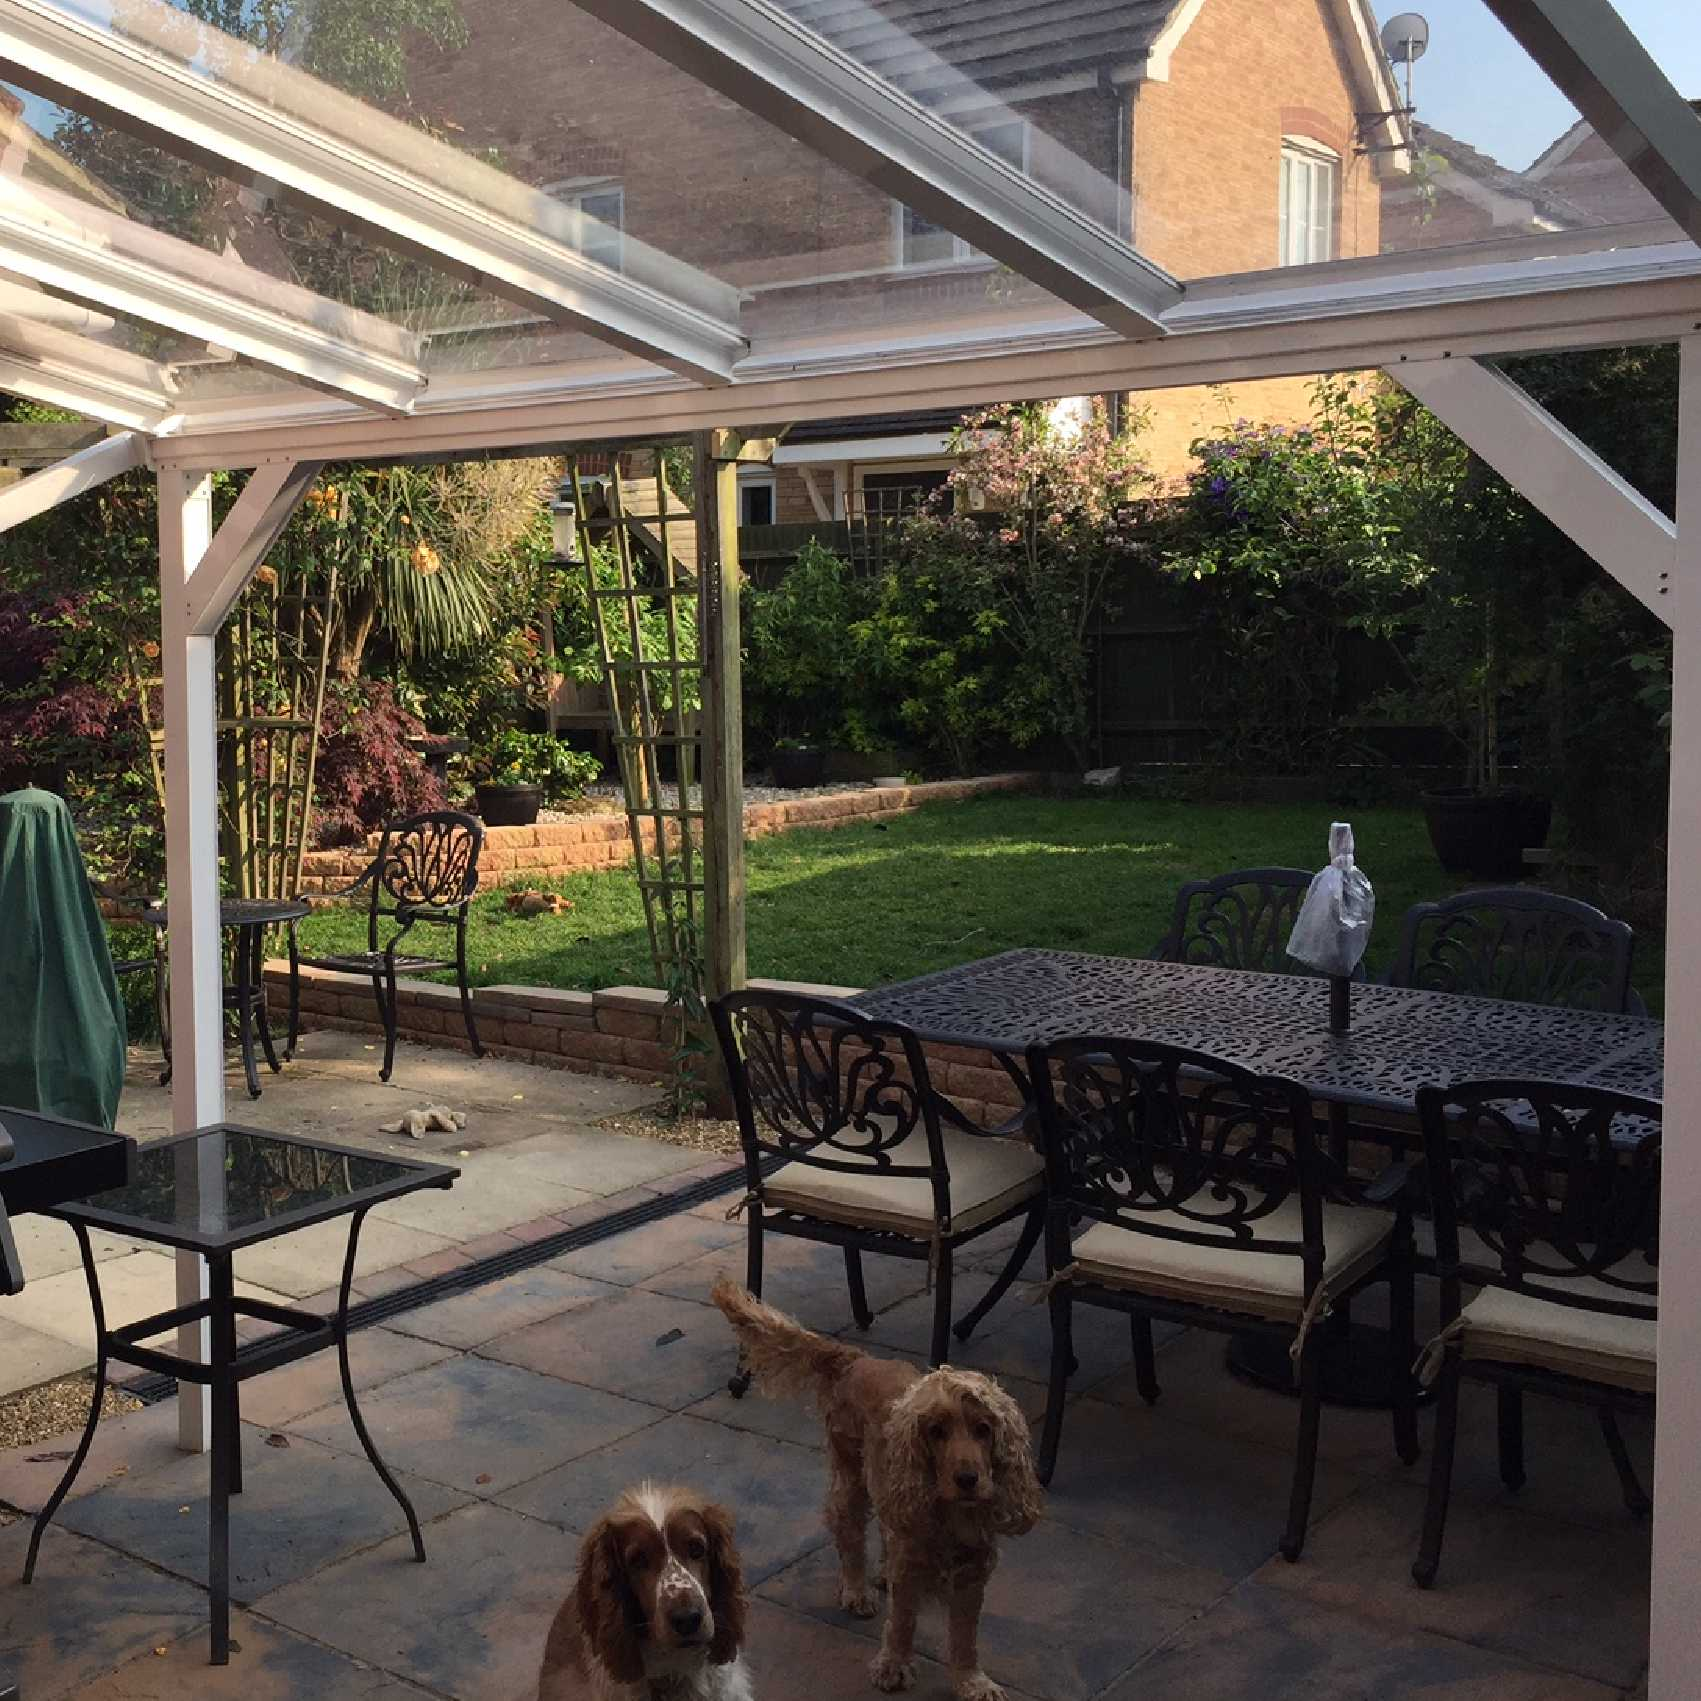 Affordable Omega Smart White Lean-To Canopy with 6mm Glass Clear Plate Polycarbonate Glazing - 3.5m (W) x 2.5m (P), (3) Supporting Posts